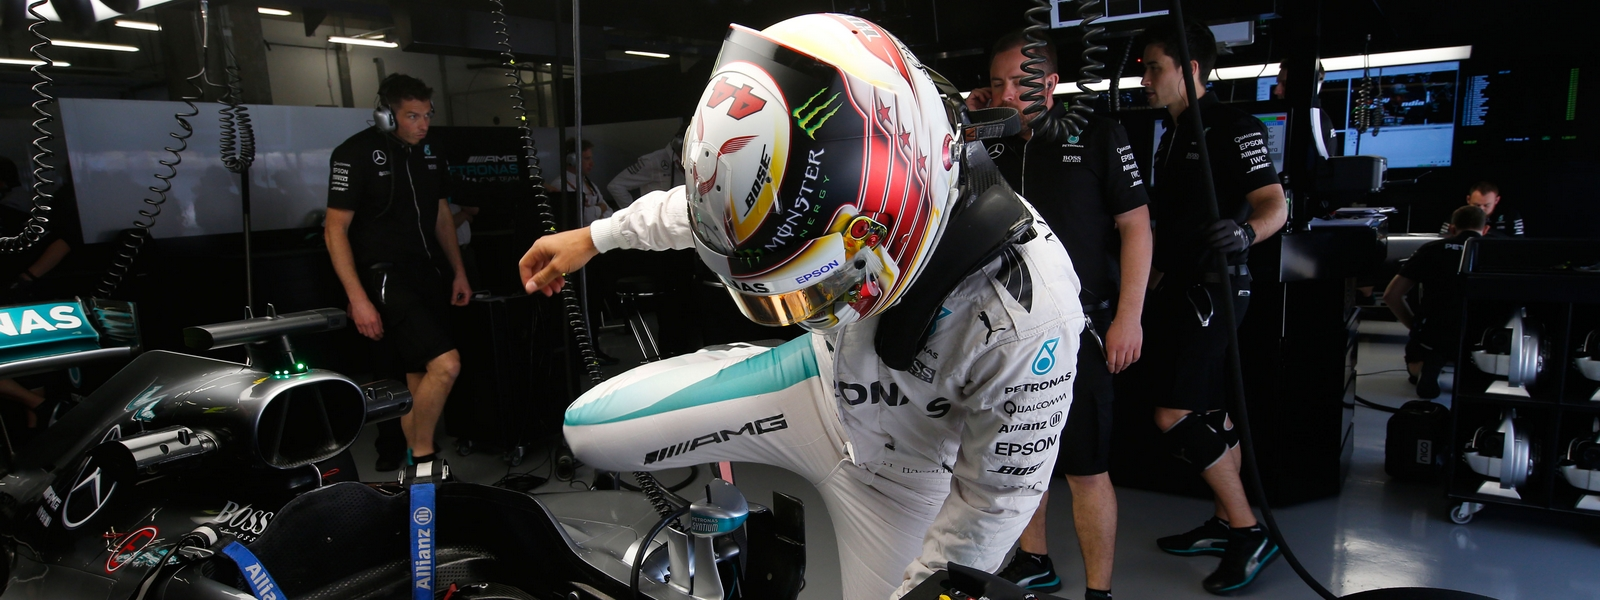 Motorsports: FIA Formula One World Championship 2016, Grand Prix of China, *** Local Caption *** +++ www.hoch-zwei.net +++ copyright: HOCH ZWEI +++ #44 Lewis Hamilton (GBR, Mercedes AMG Petronas F1 Team),